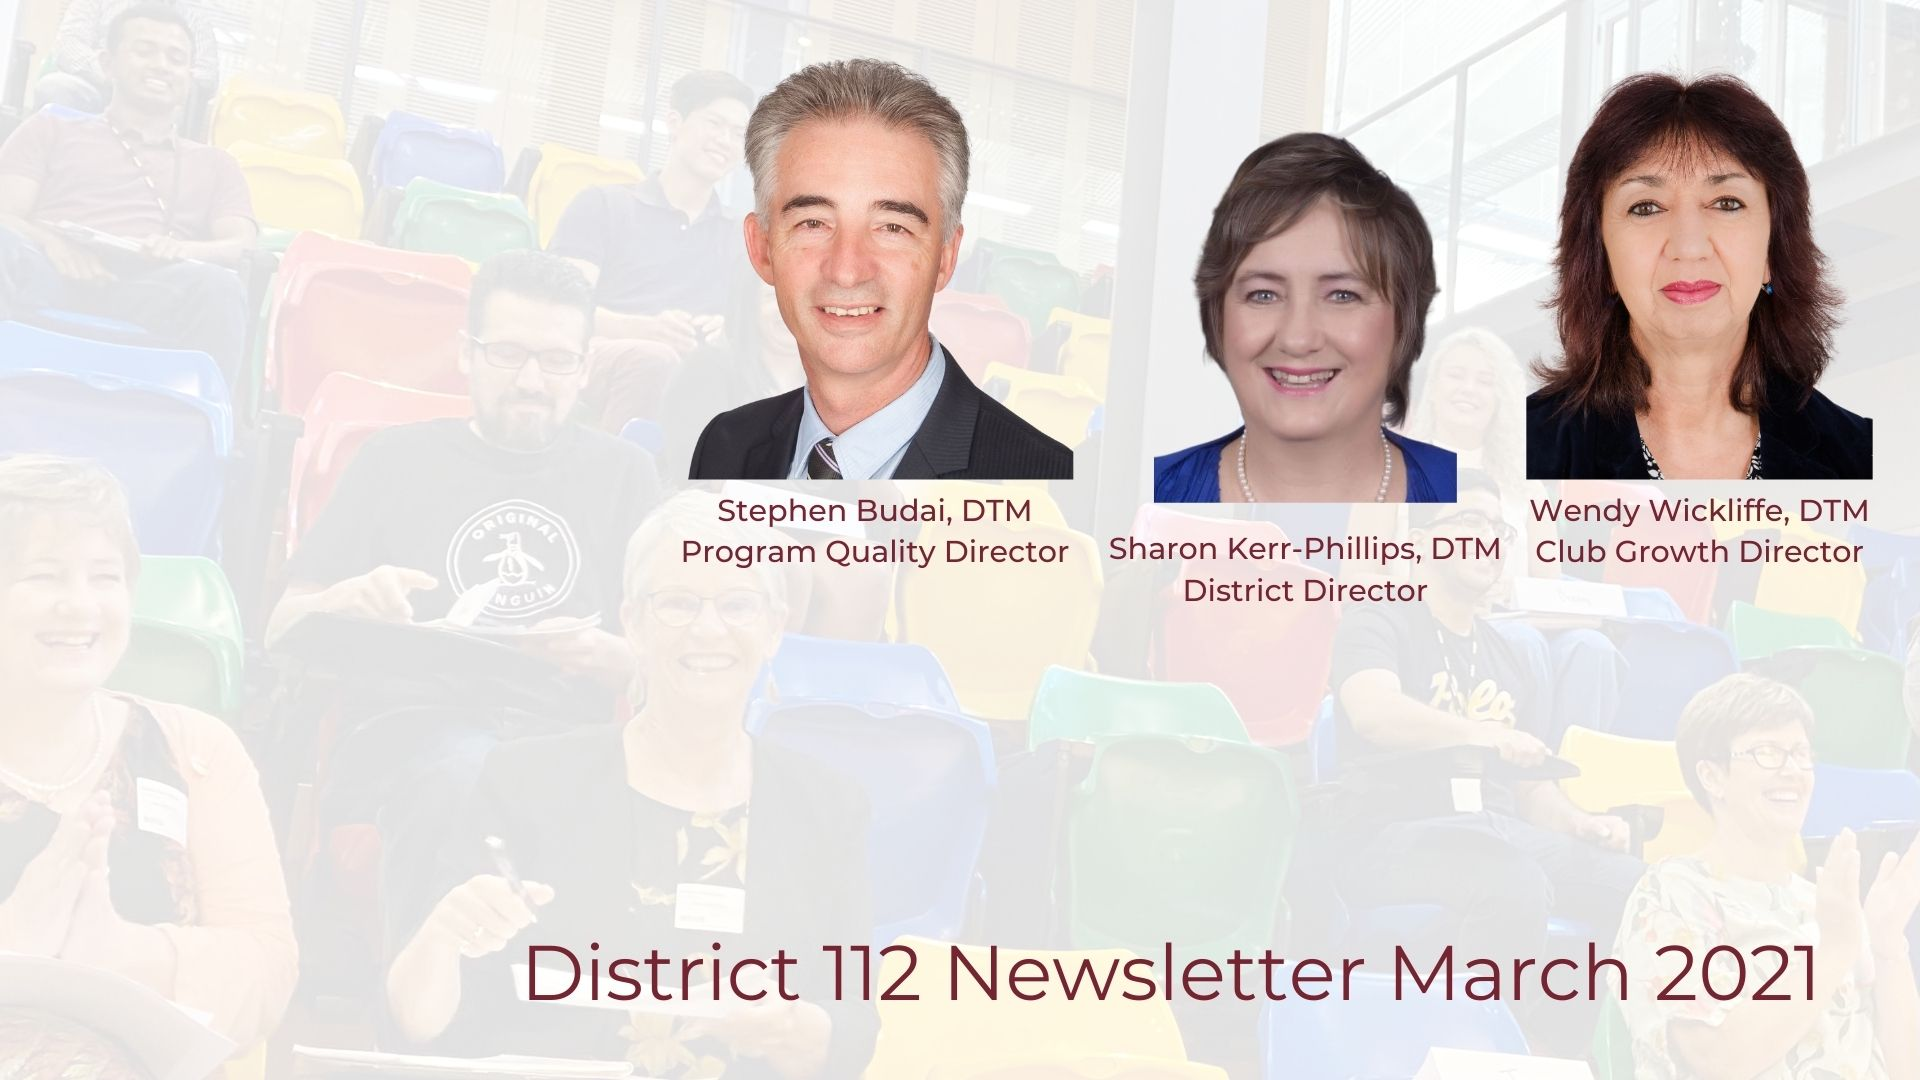 District 112 Newsletter March 2021